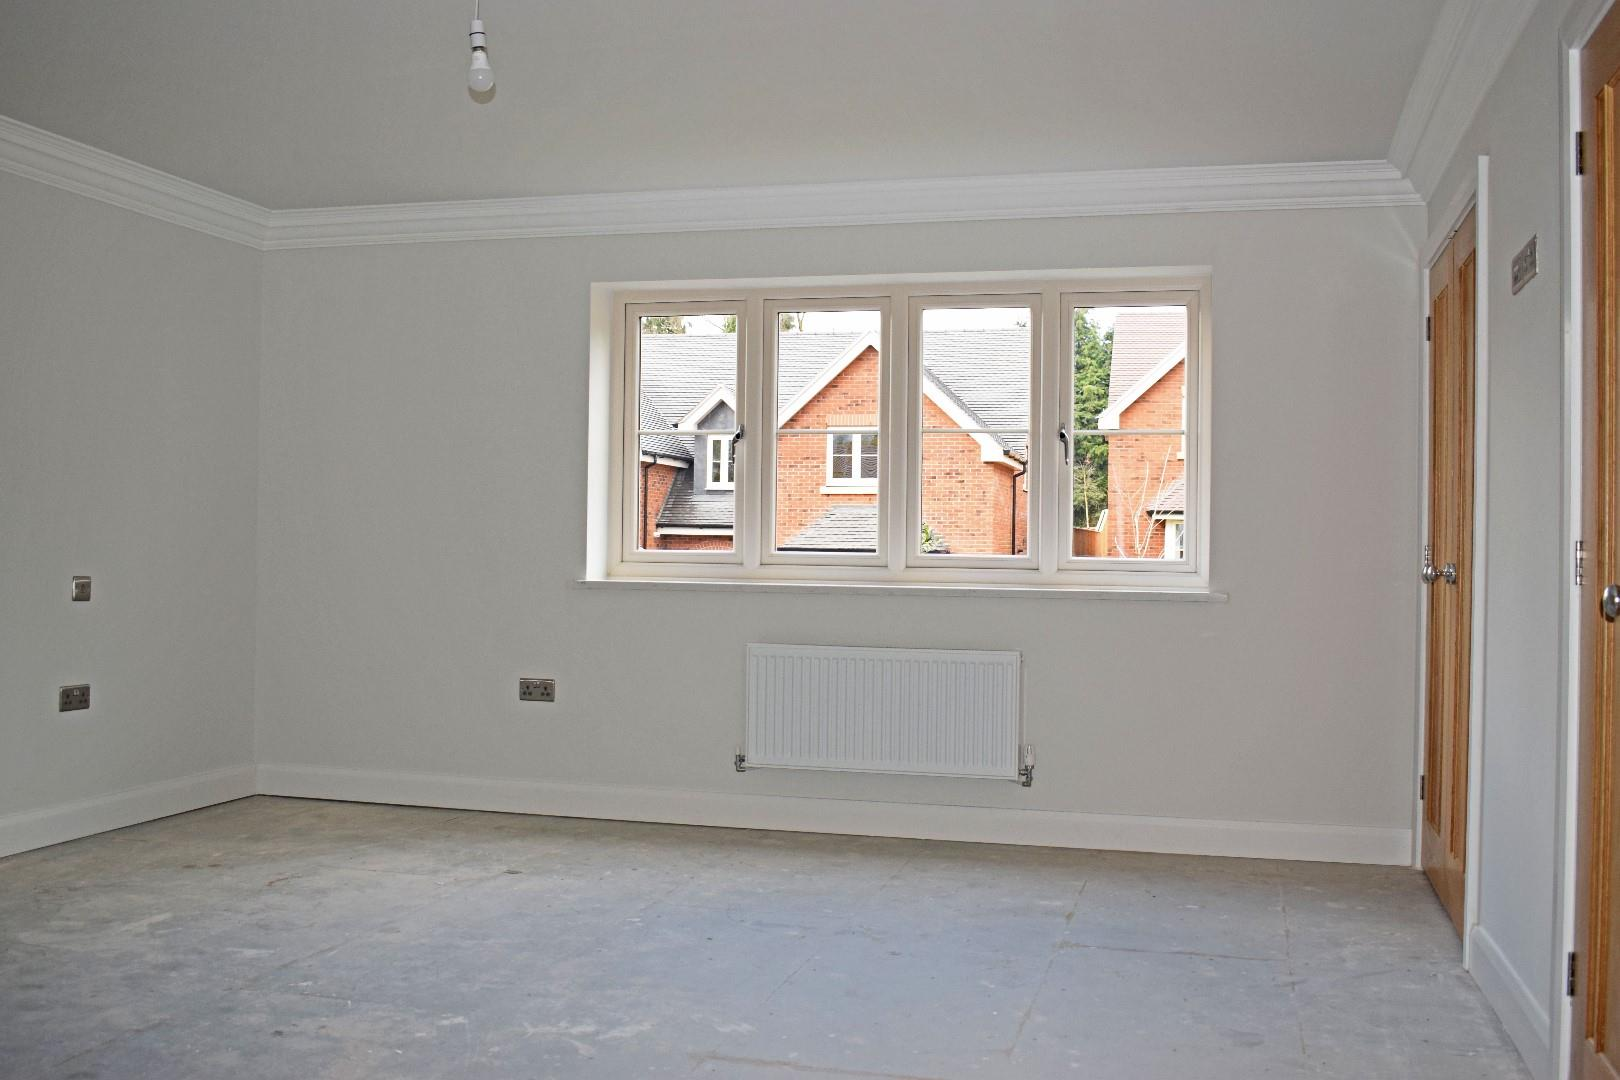 Plot 2, 59 Twatling Road, Barnt Green, B45 8HS